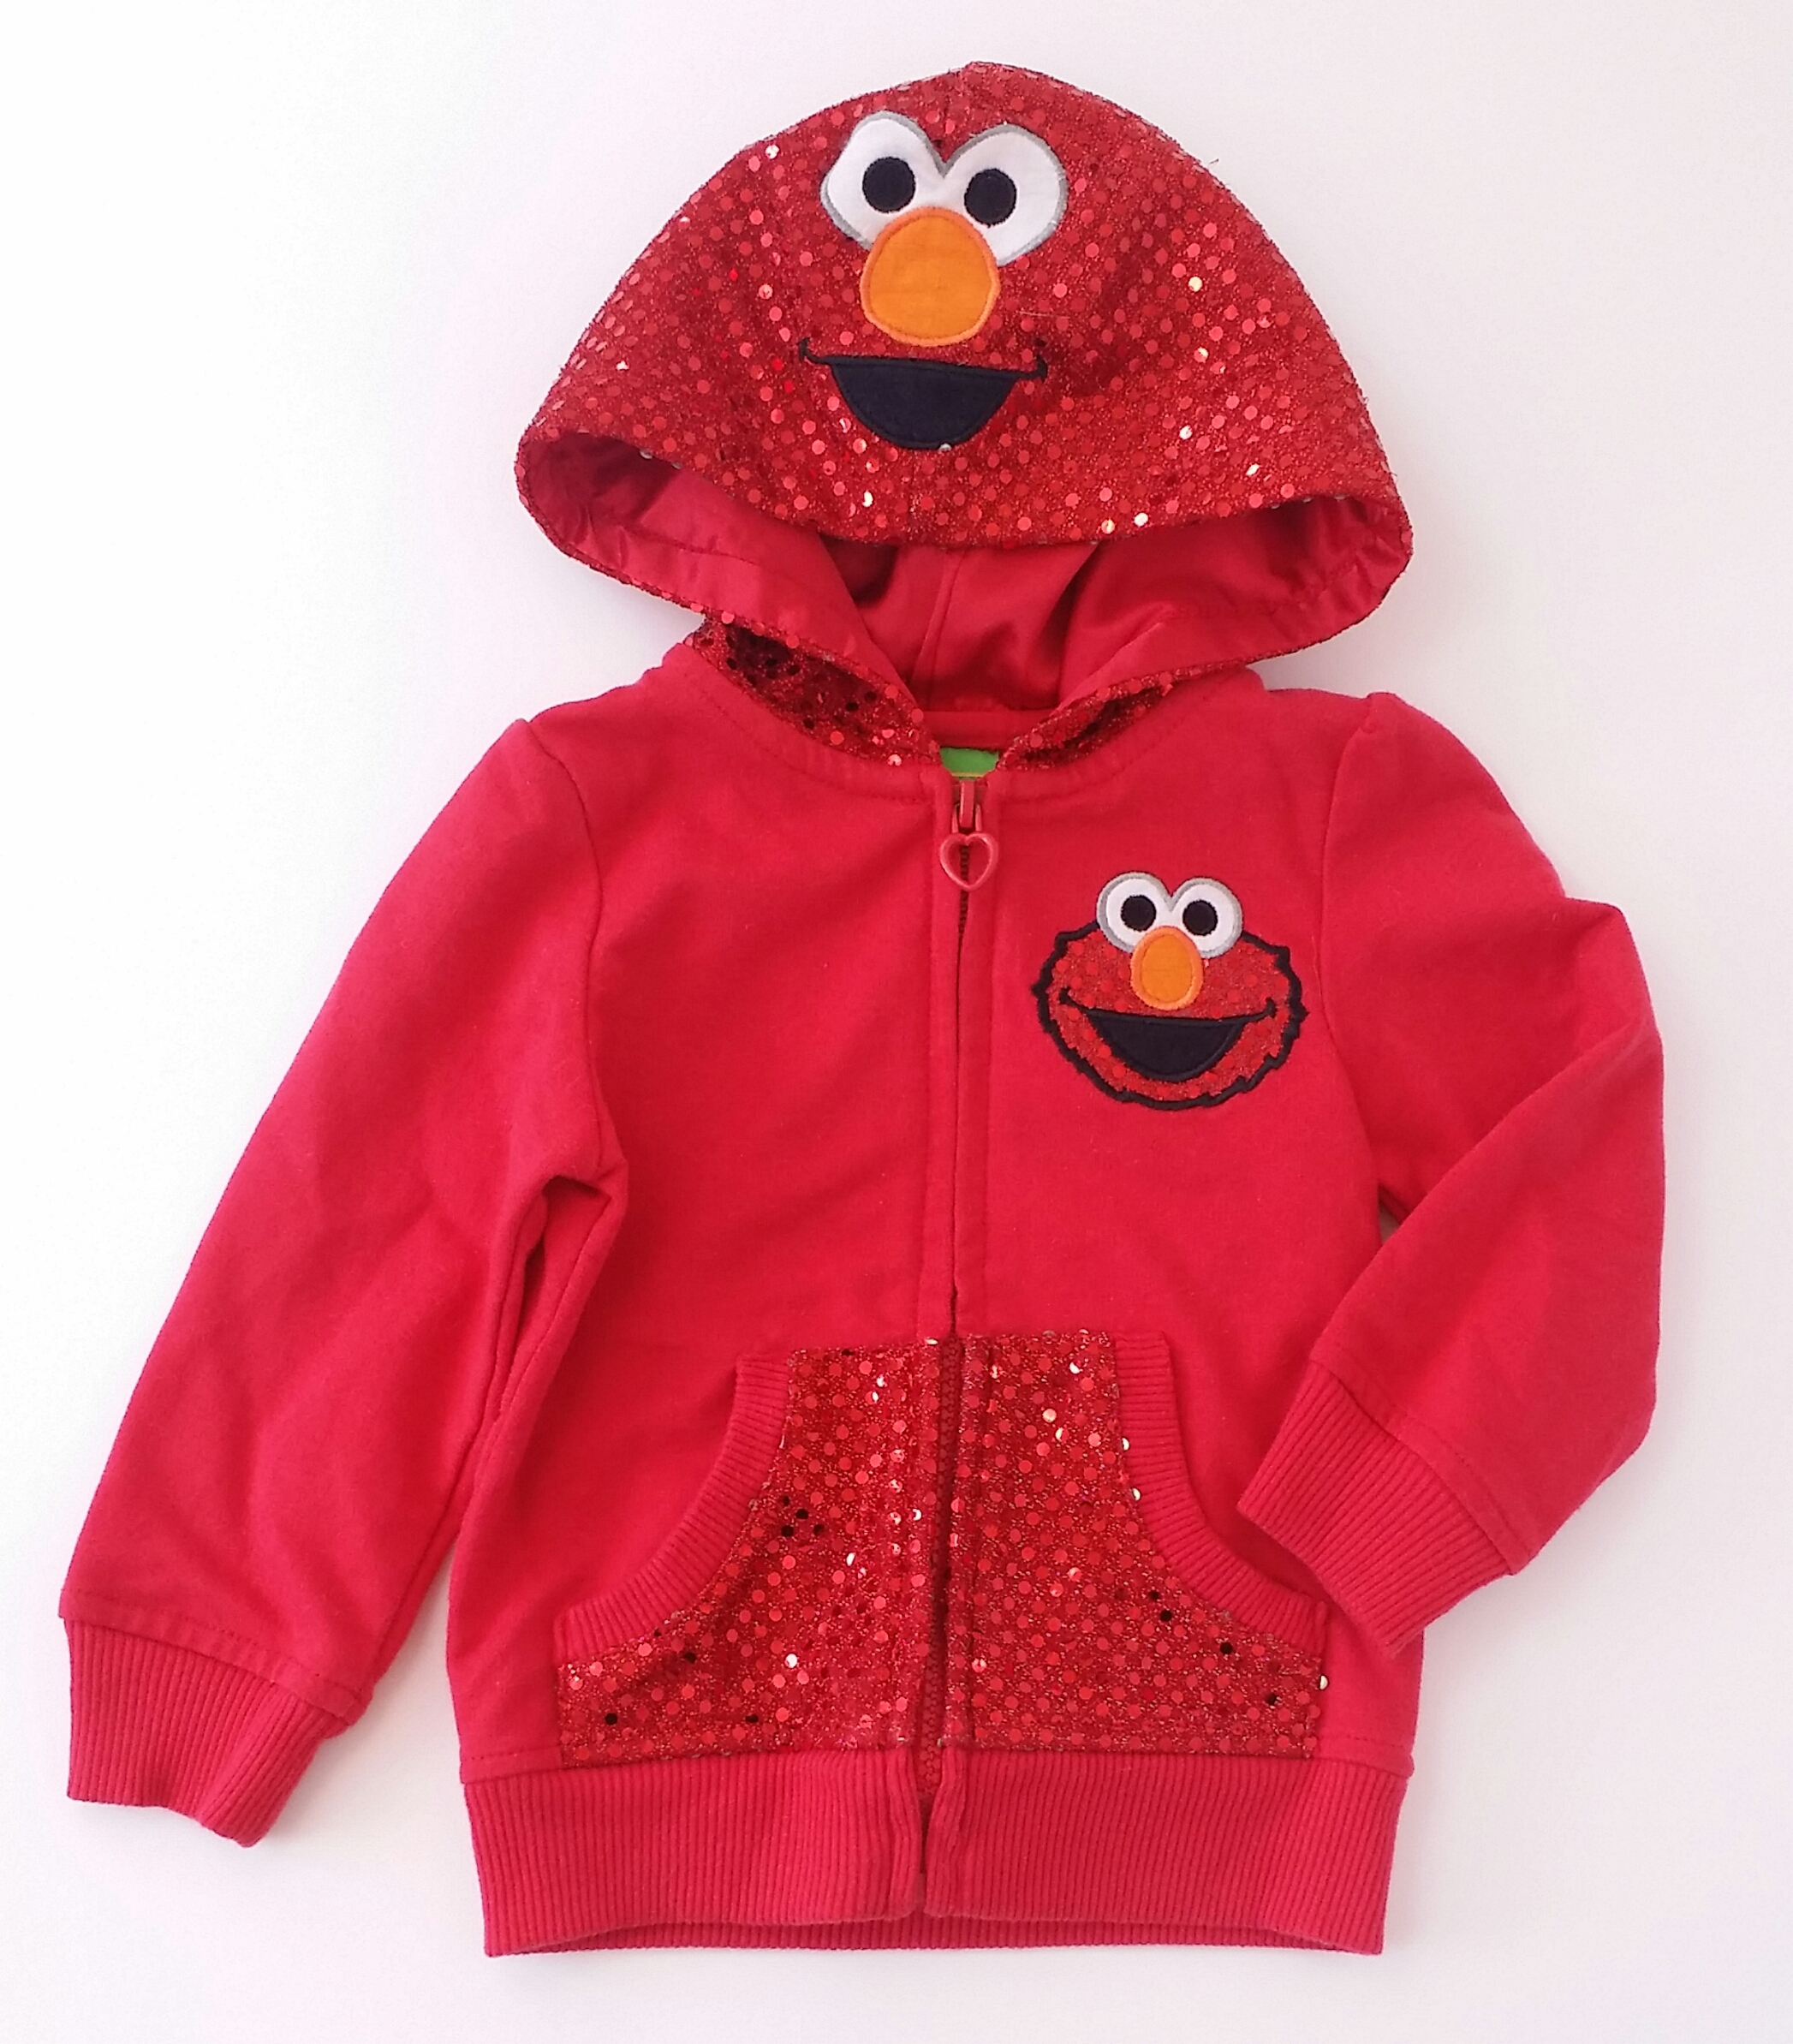 Sesame-Street-3-YEARS-Sequin-Jacket_2110854A.jpg